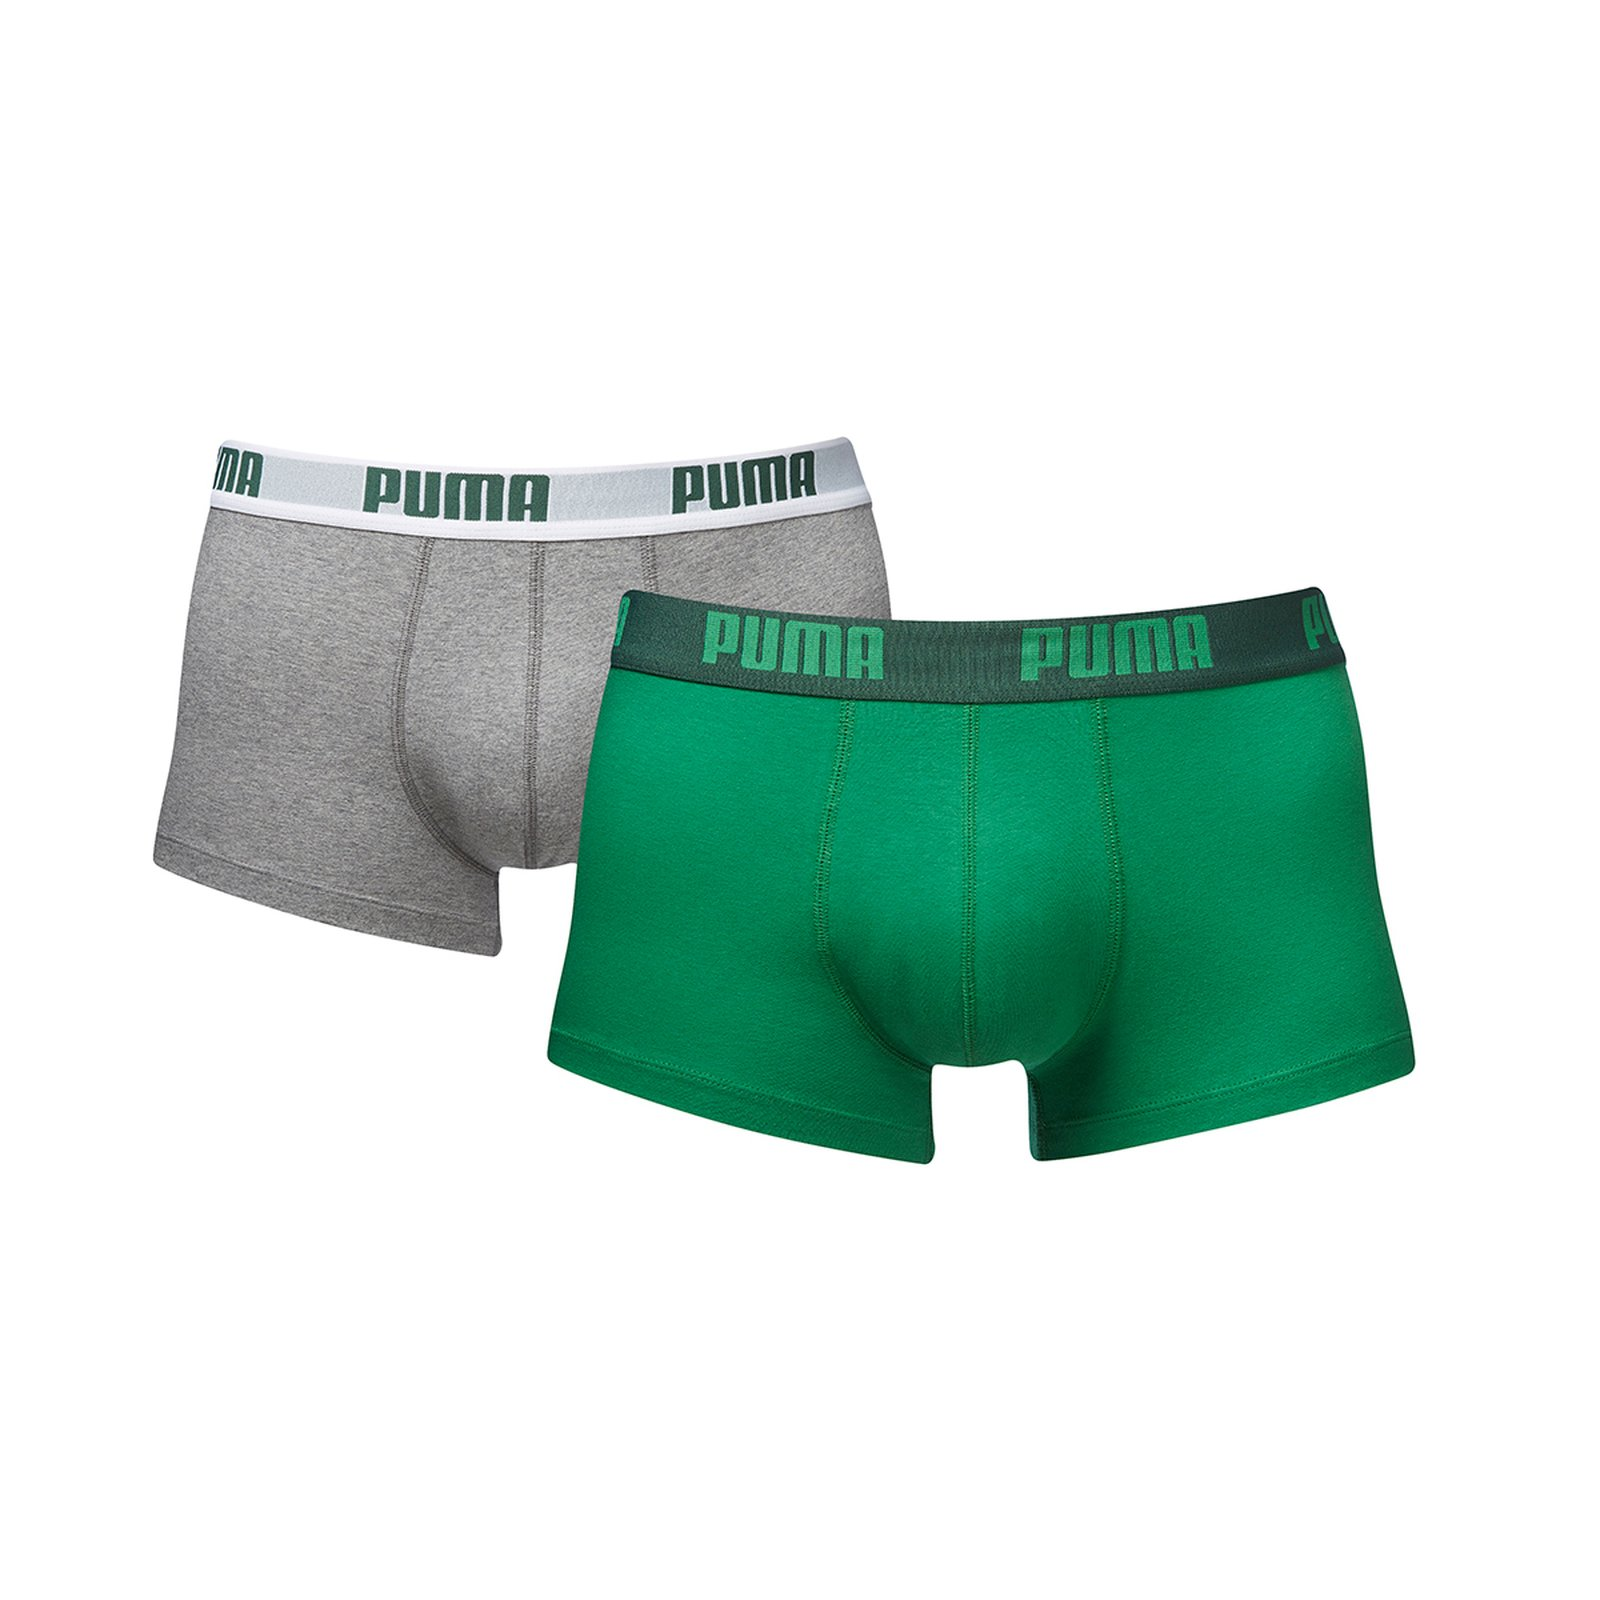 Puma Basic Shortboxer im Doppelpack L green grey